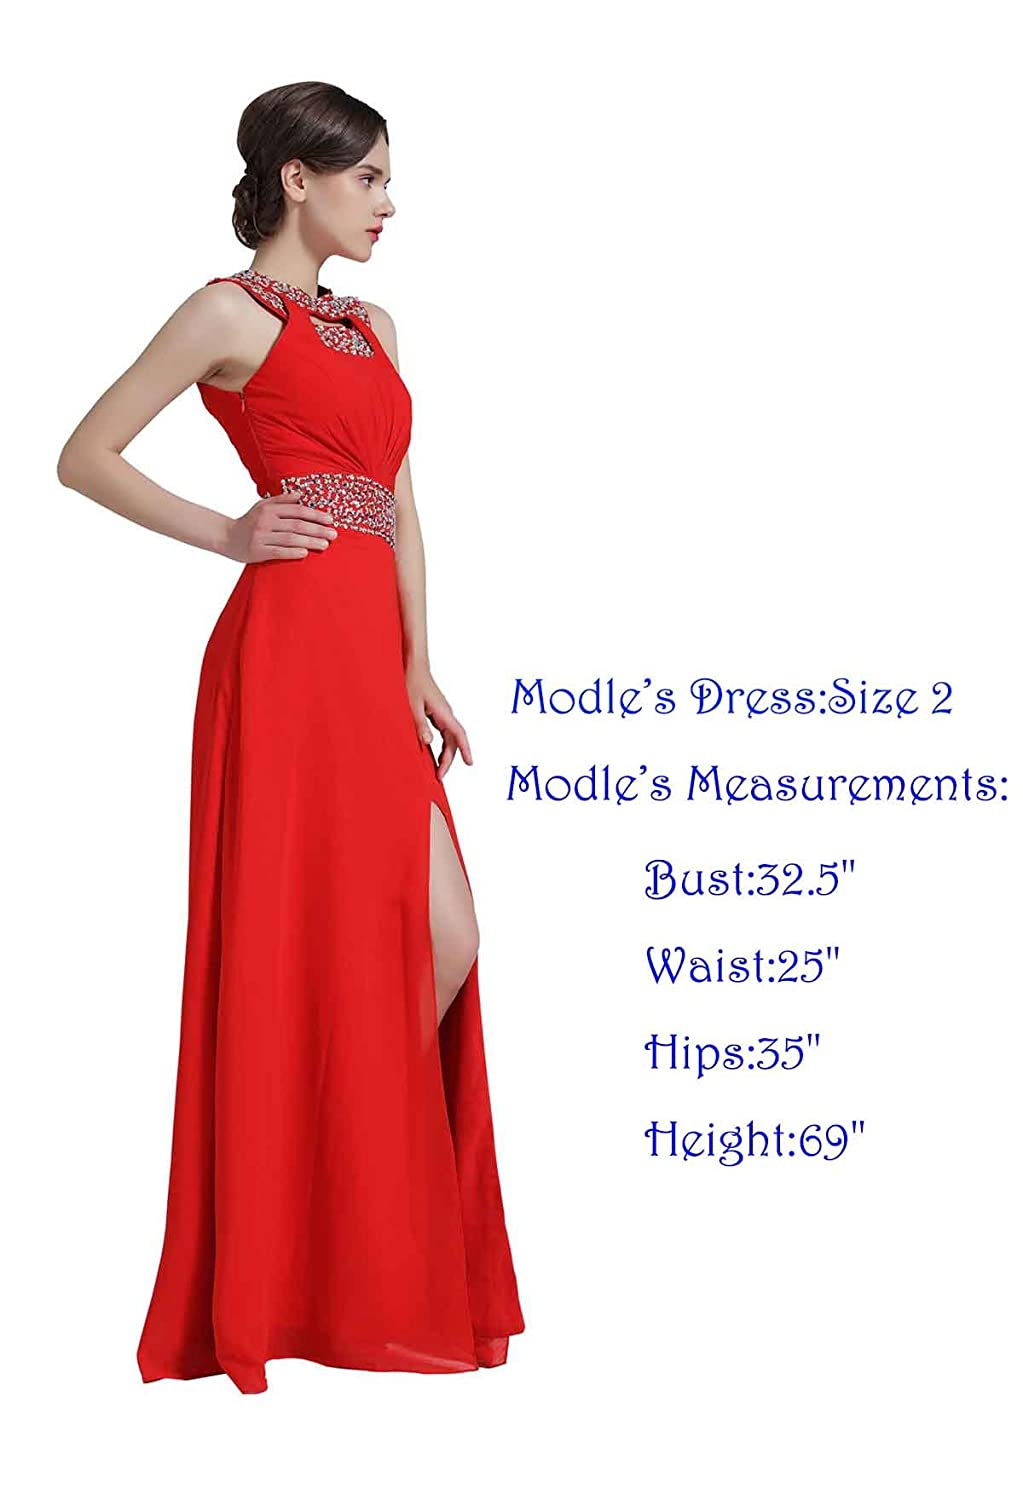 Missydress beaded bridesmaid evening party prom chiffon gown missydress beaded bridesmaid evening party prom chiffon gown dress15 at amazon womens clothing store ombrellifo Images